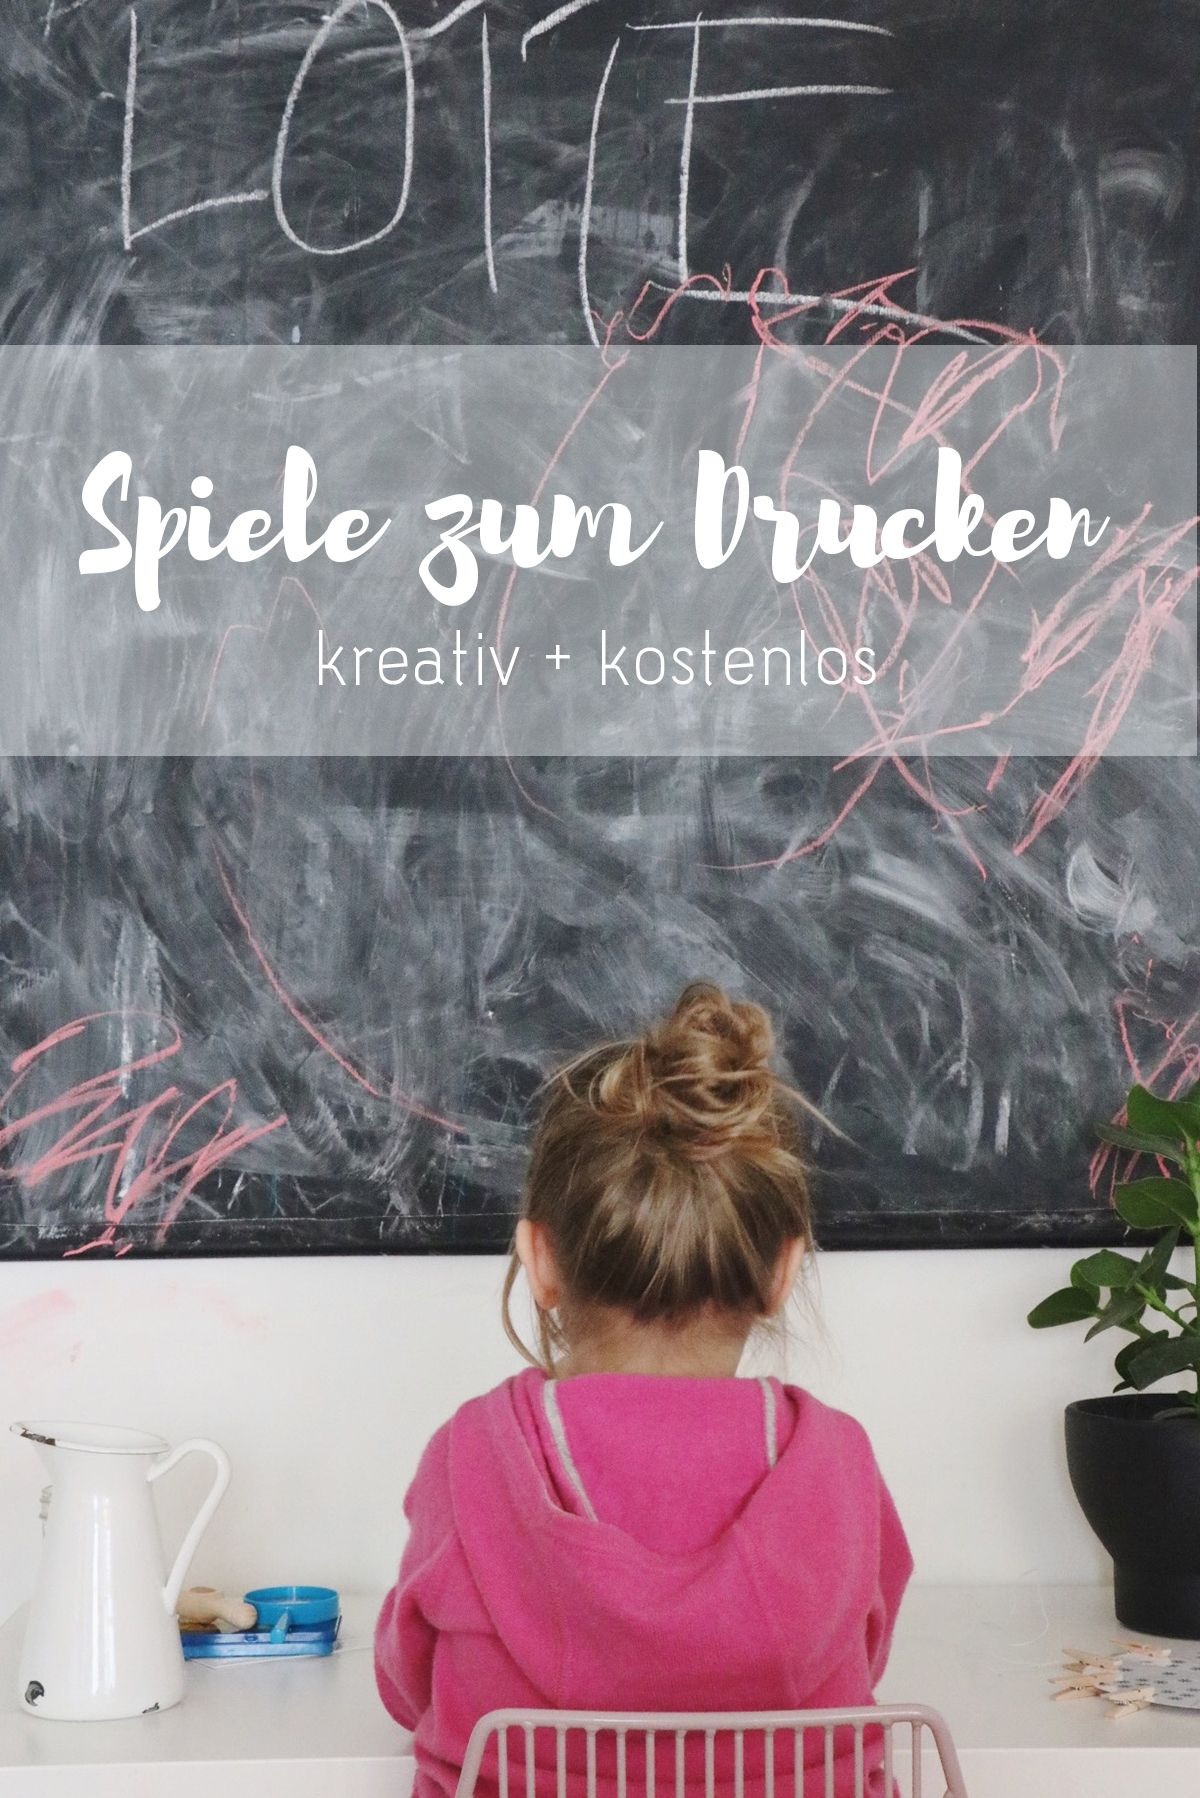 diy fotohalter aus modelliermasse schule pinterest kinder spiele f r kinder und spiele. Black Bedroom Furniture Sets. Home Design Ideas